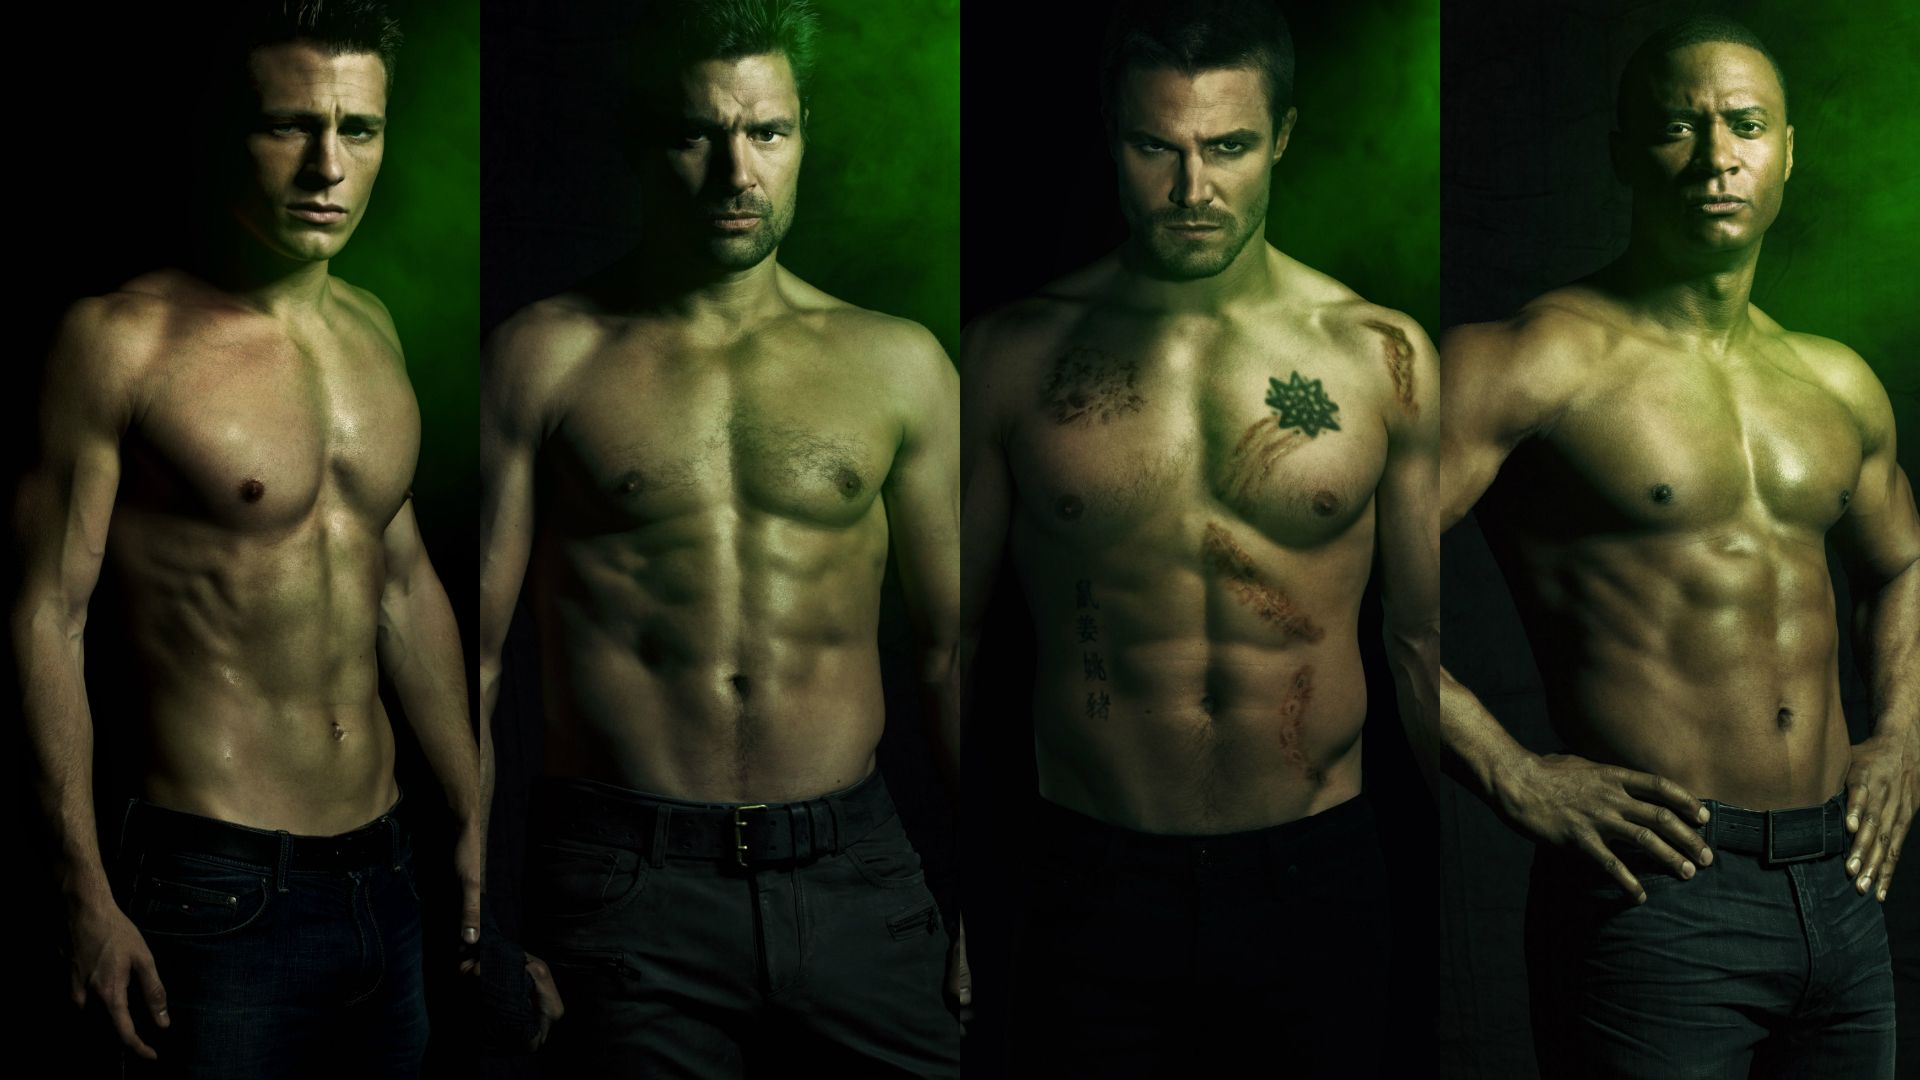 Arrow Stephen Amell   Wallpaper High Definition High Quality 1920x1080